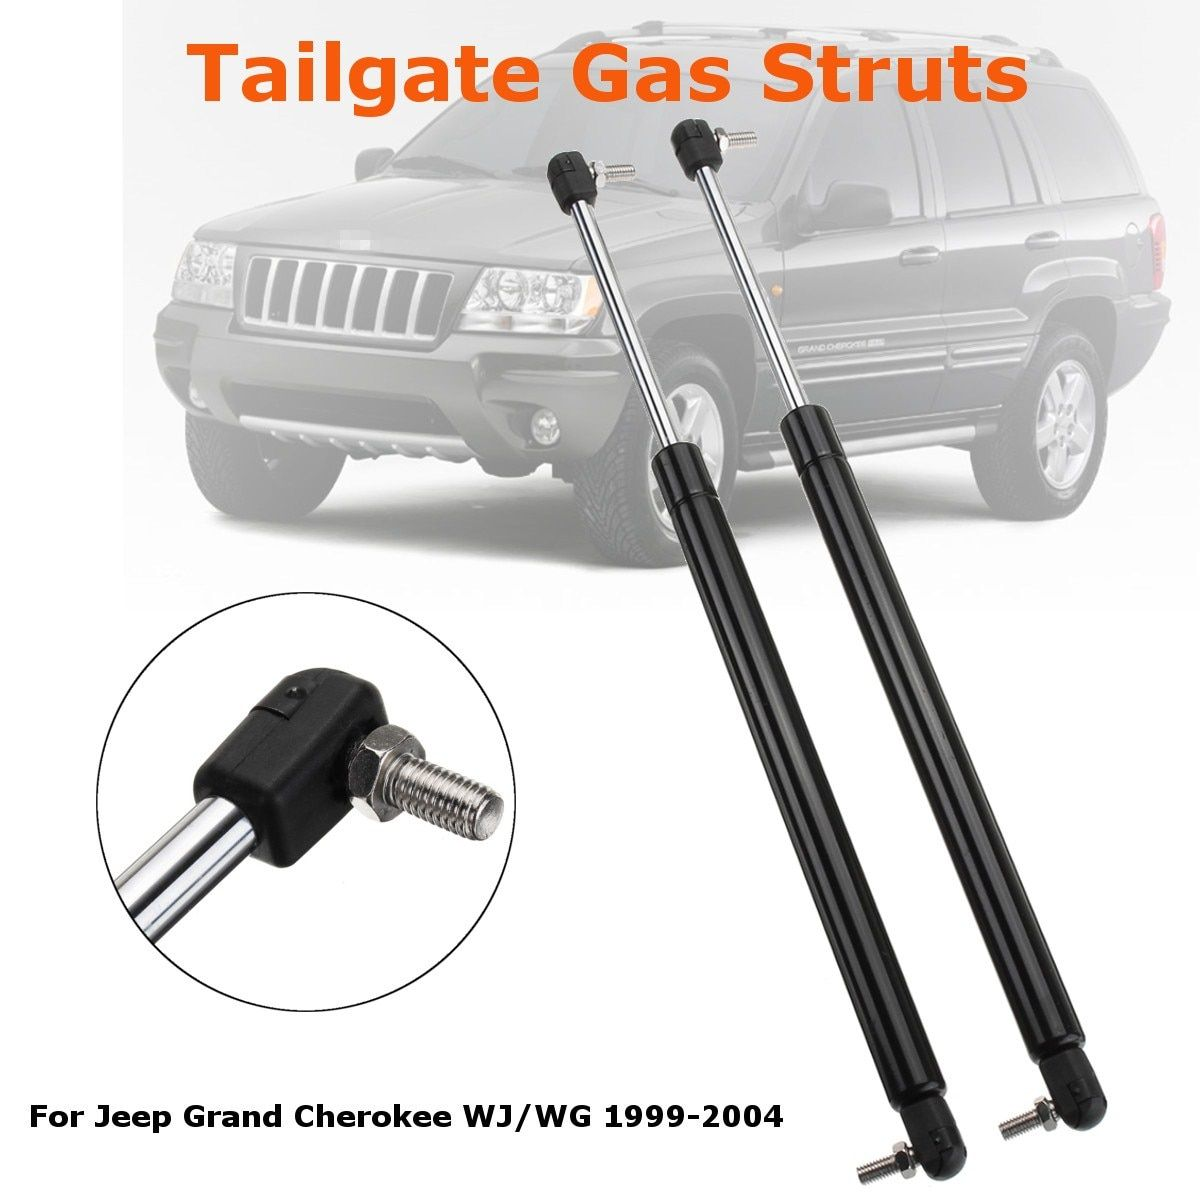 2PC Rear Tailgate Boot Gas Support Struts For Jeep Grand Cherokee WJ/WG 1999-2004 55137022AB